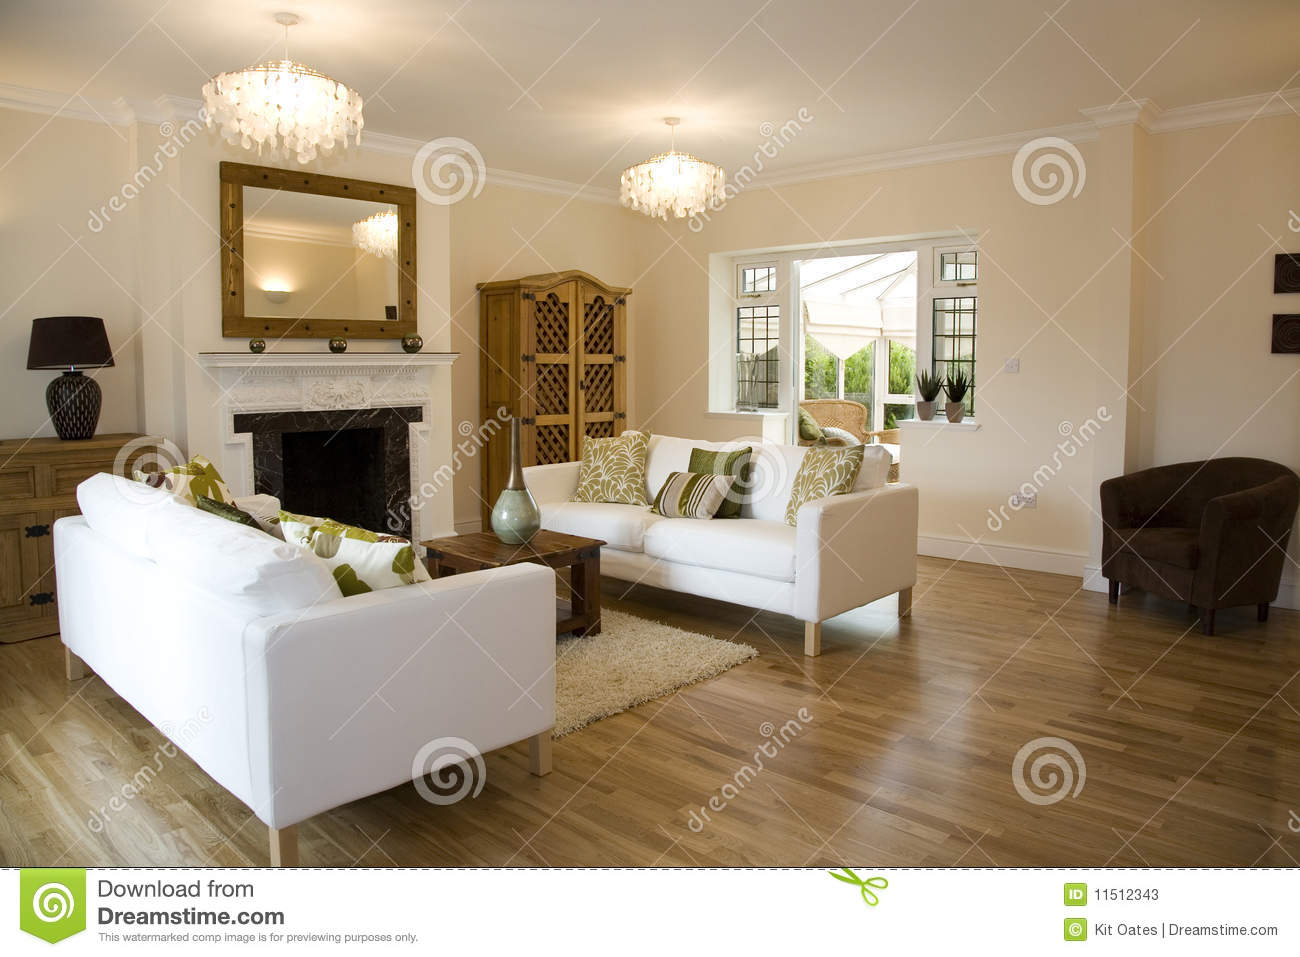 Designer sitting room stock image image of home ceiling 11512343 - Different kinds of sitting rooms designs ...